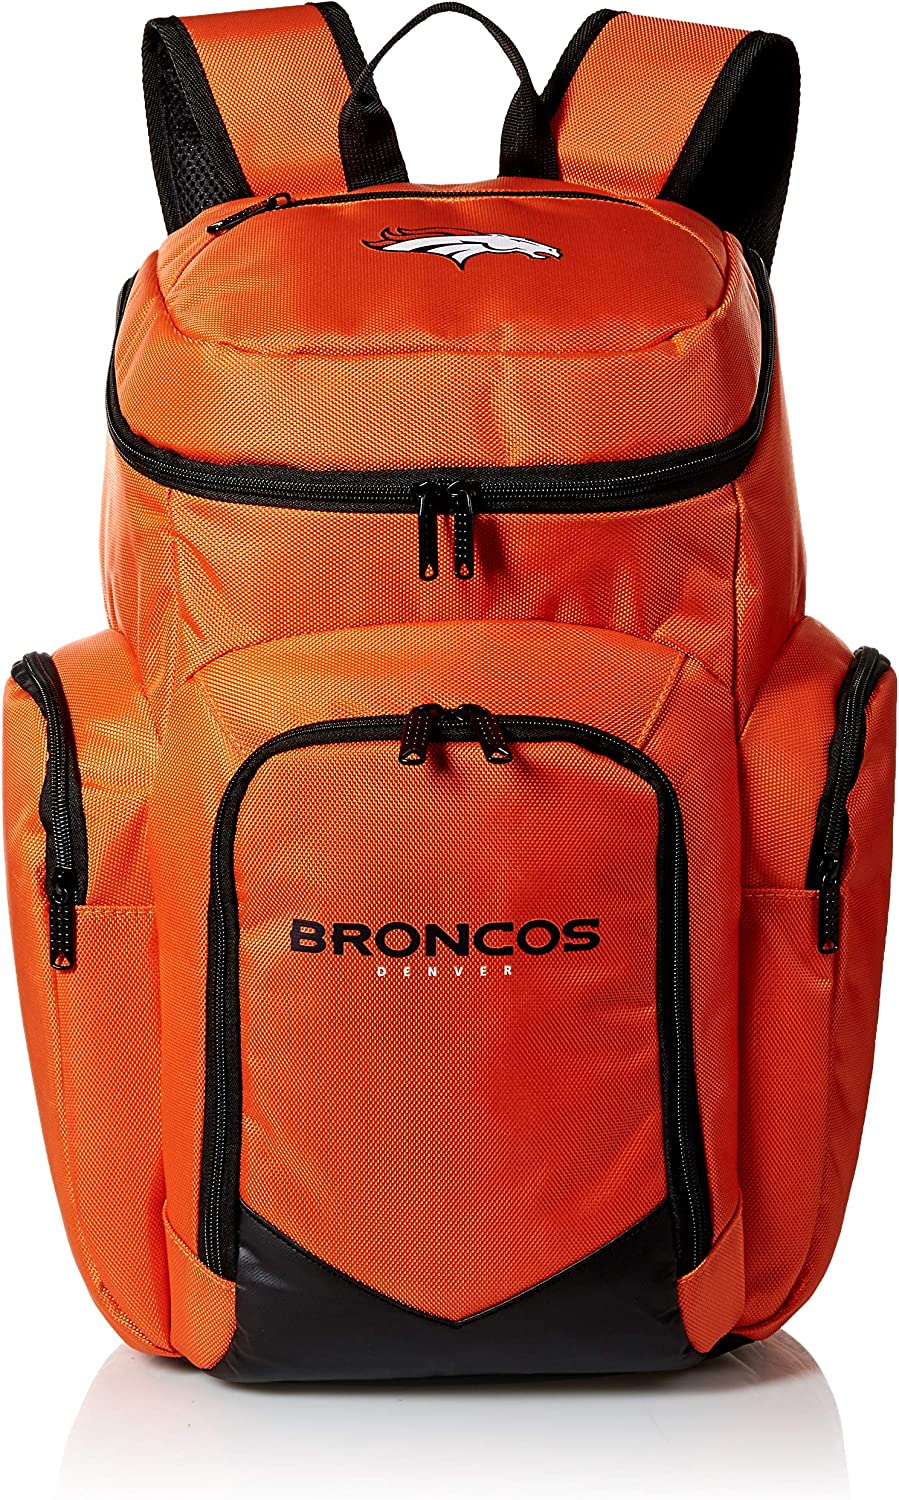 Miami Dolphins Backpack Ranking Finally resale start TOP16 Traveler